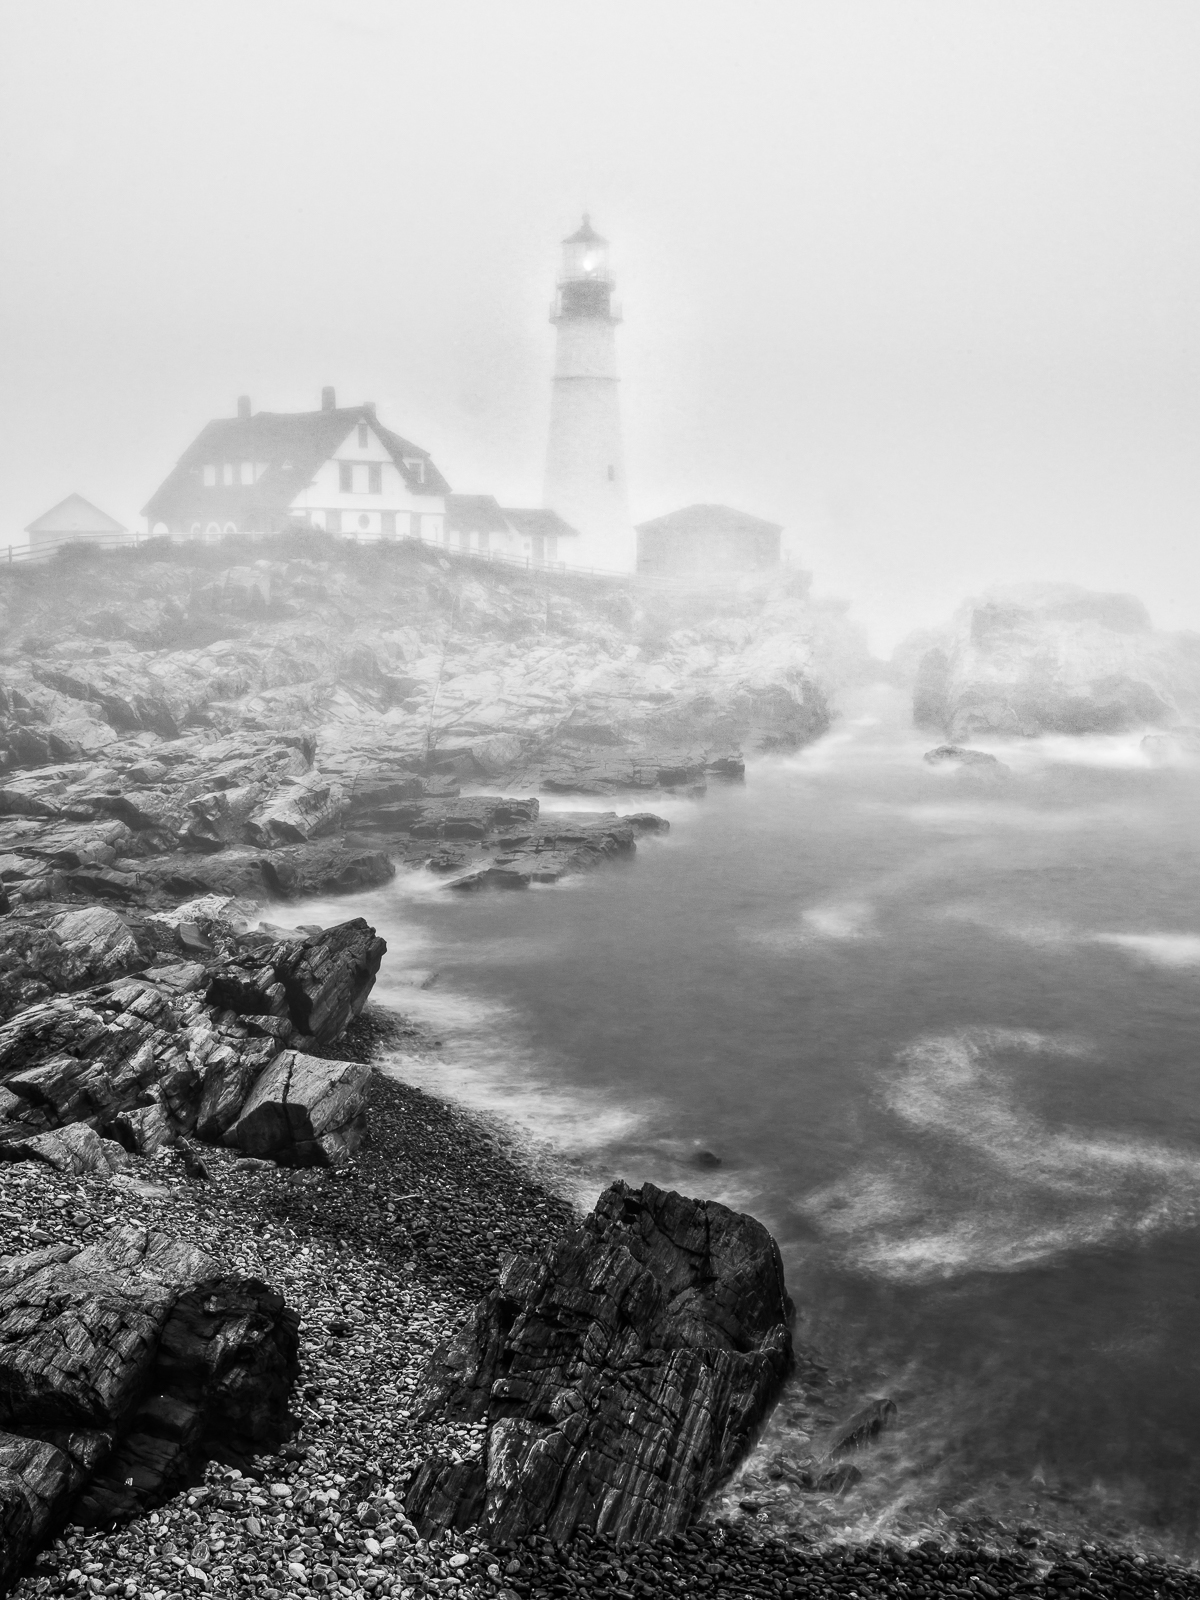 Foggy Warning, Black and White, Lighthouse, Maine, New England, Portland Lighthouse, BW, B&W, Black, White, photo